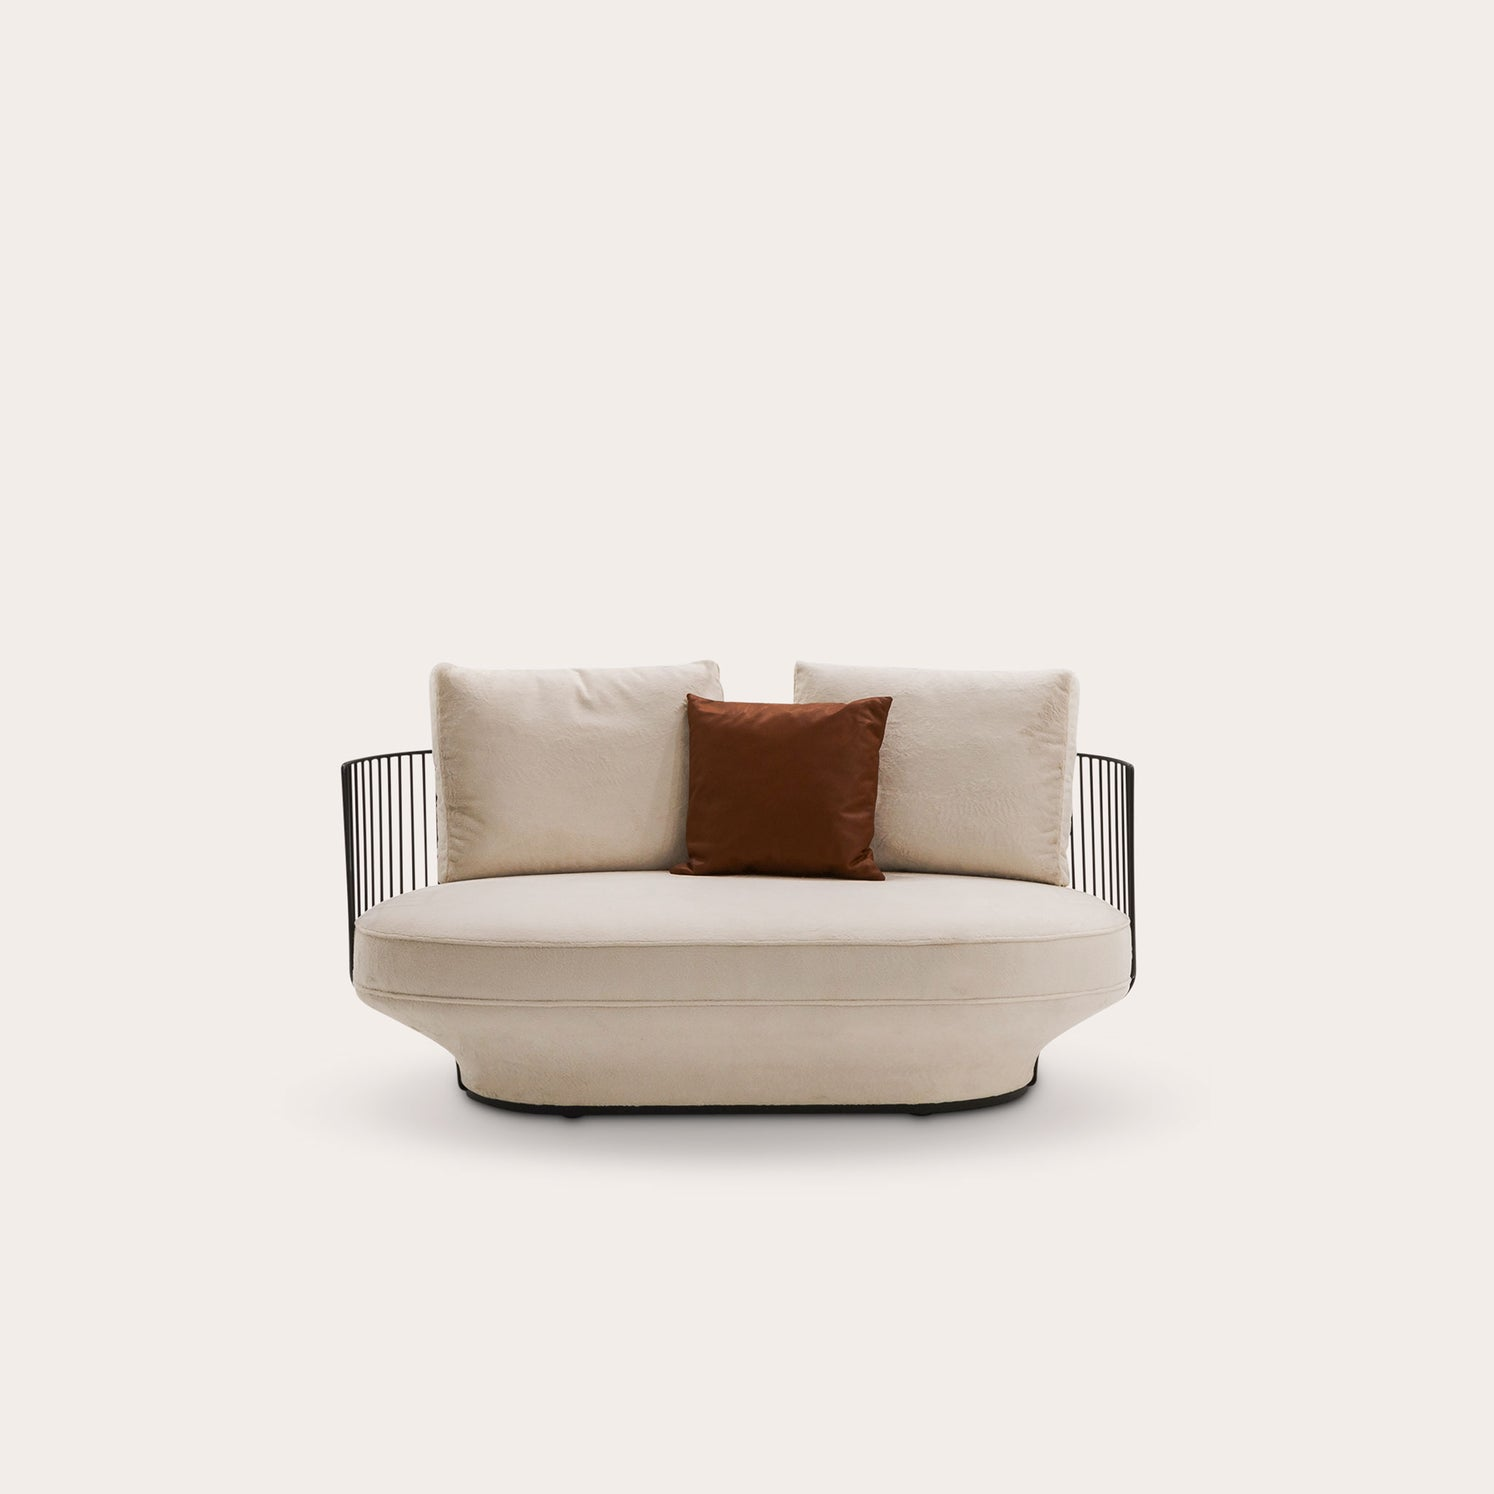 Paradise Bird Seating Marco Dessi Designer Furniture Sku: 758-240-10544